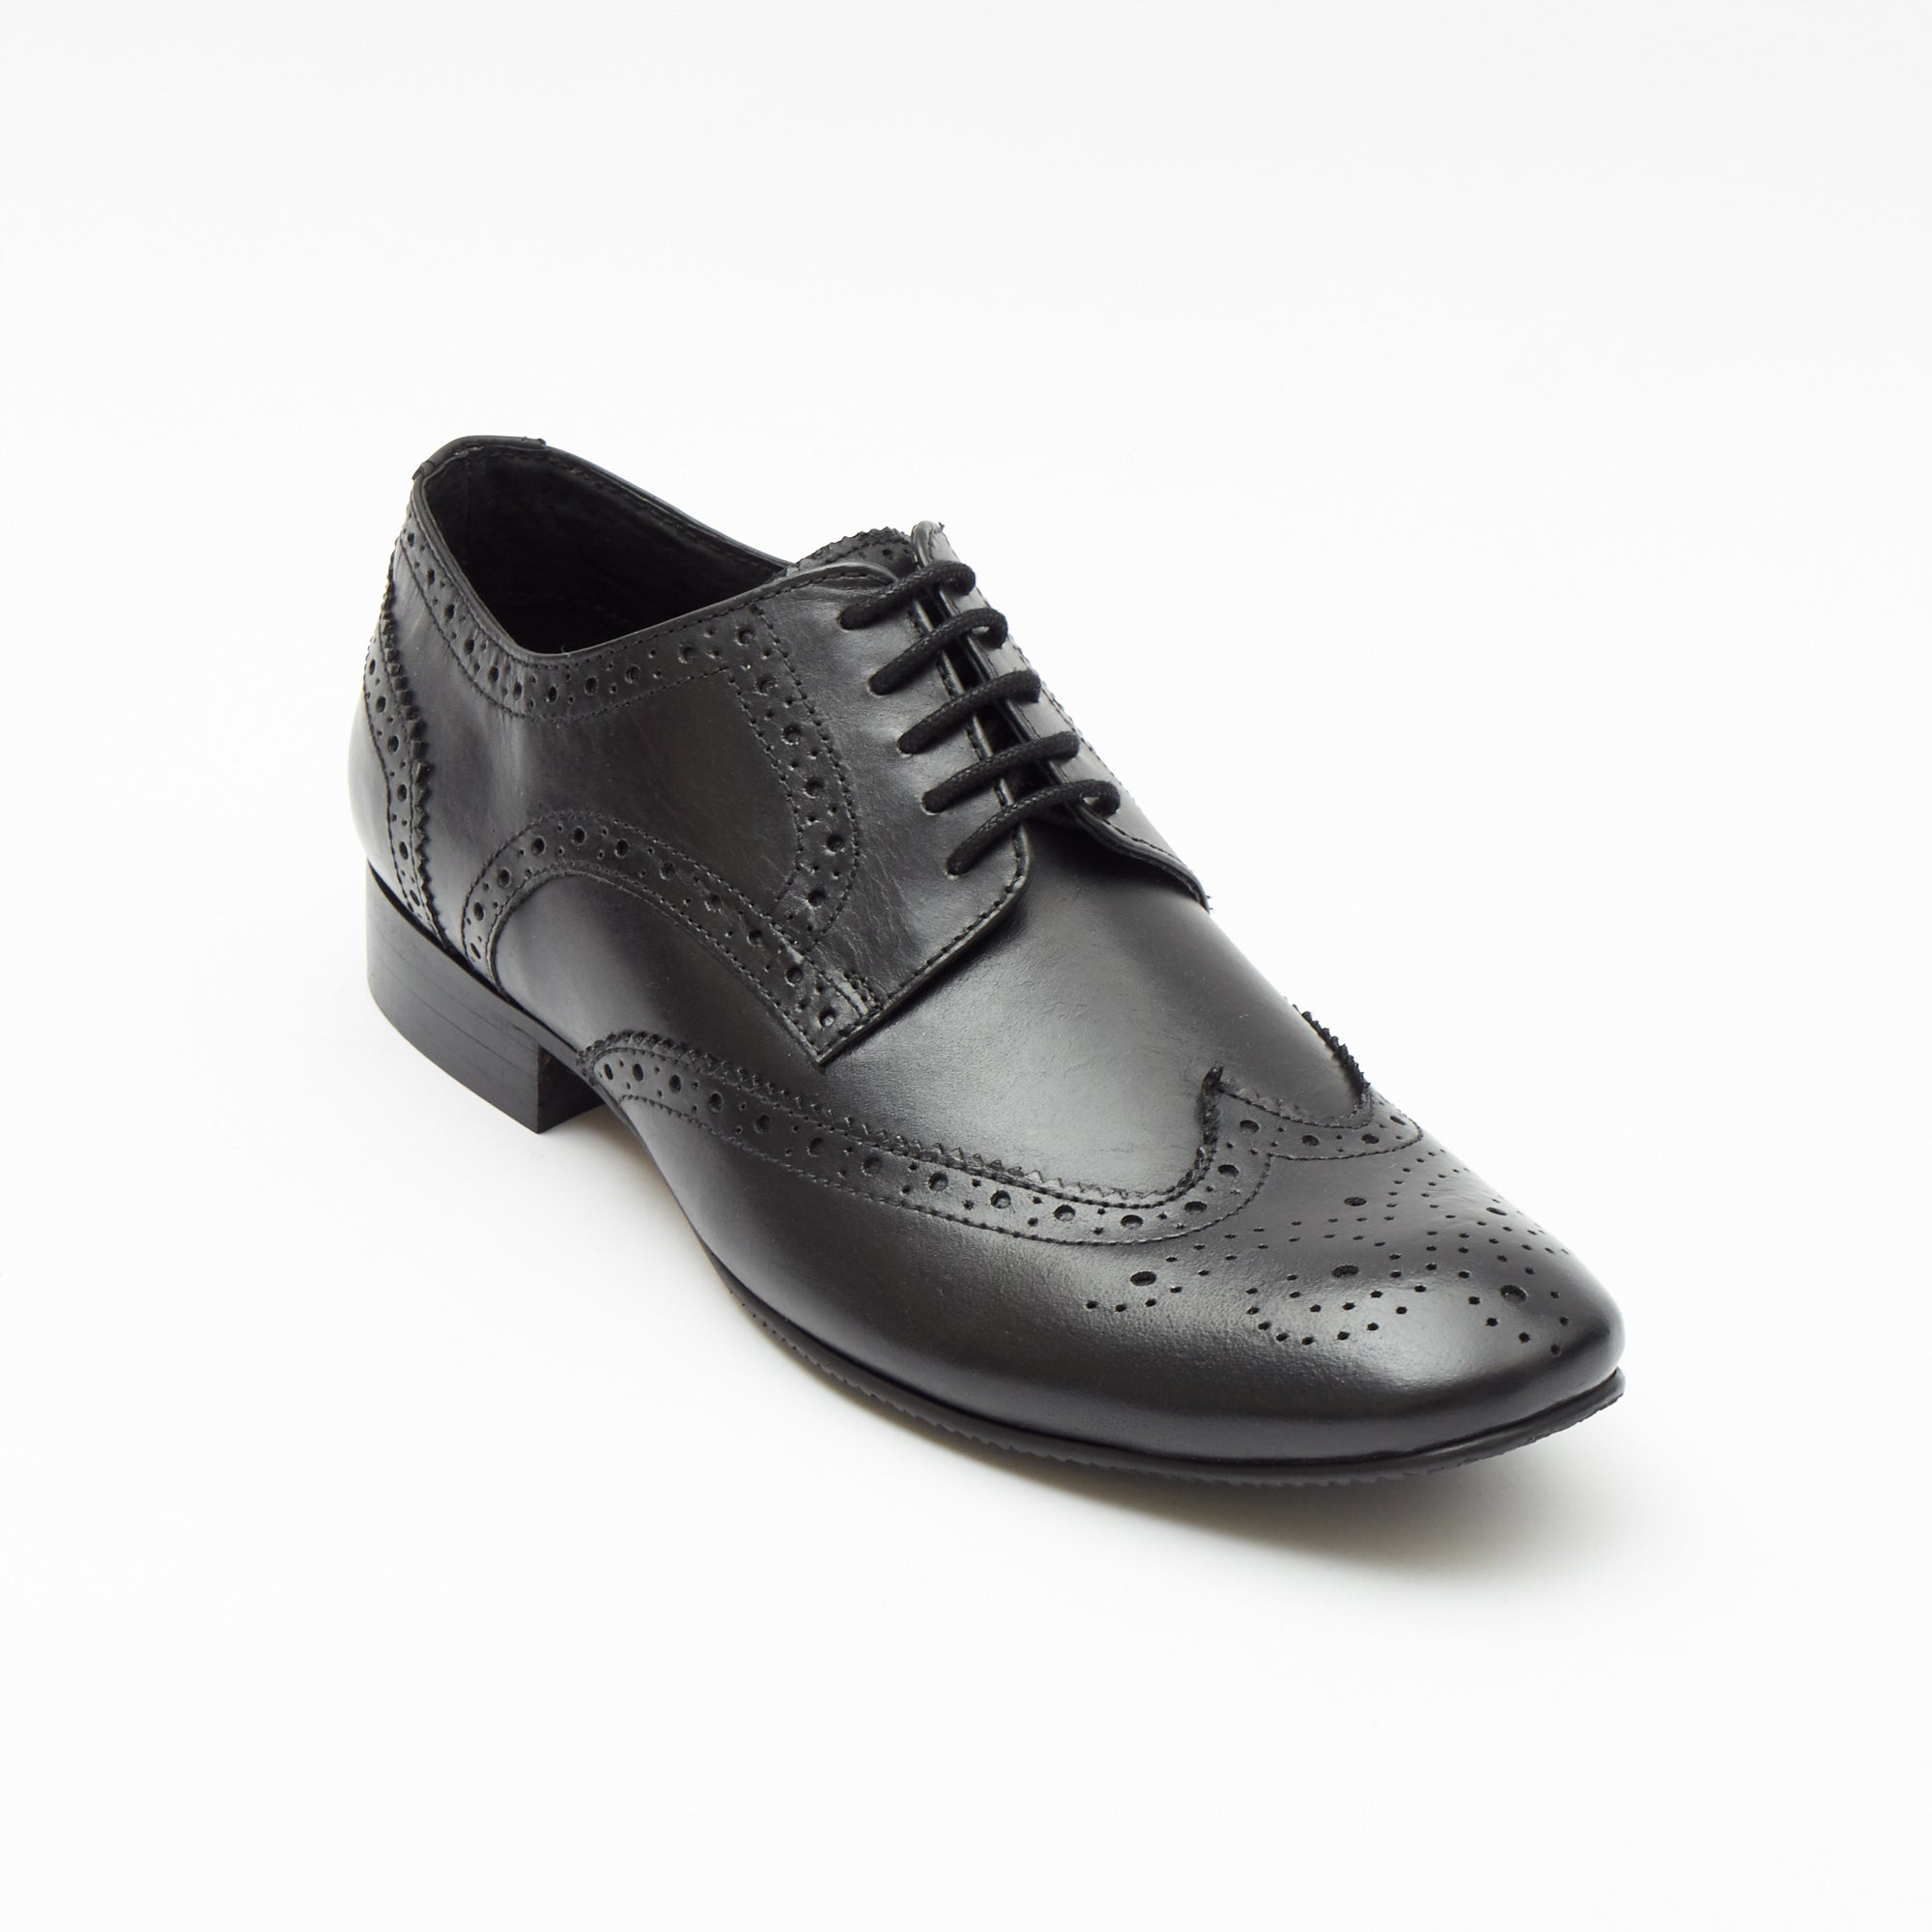 Mens Leather Formal Shoes 25201_Black